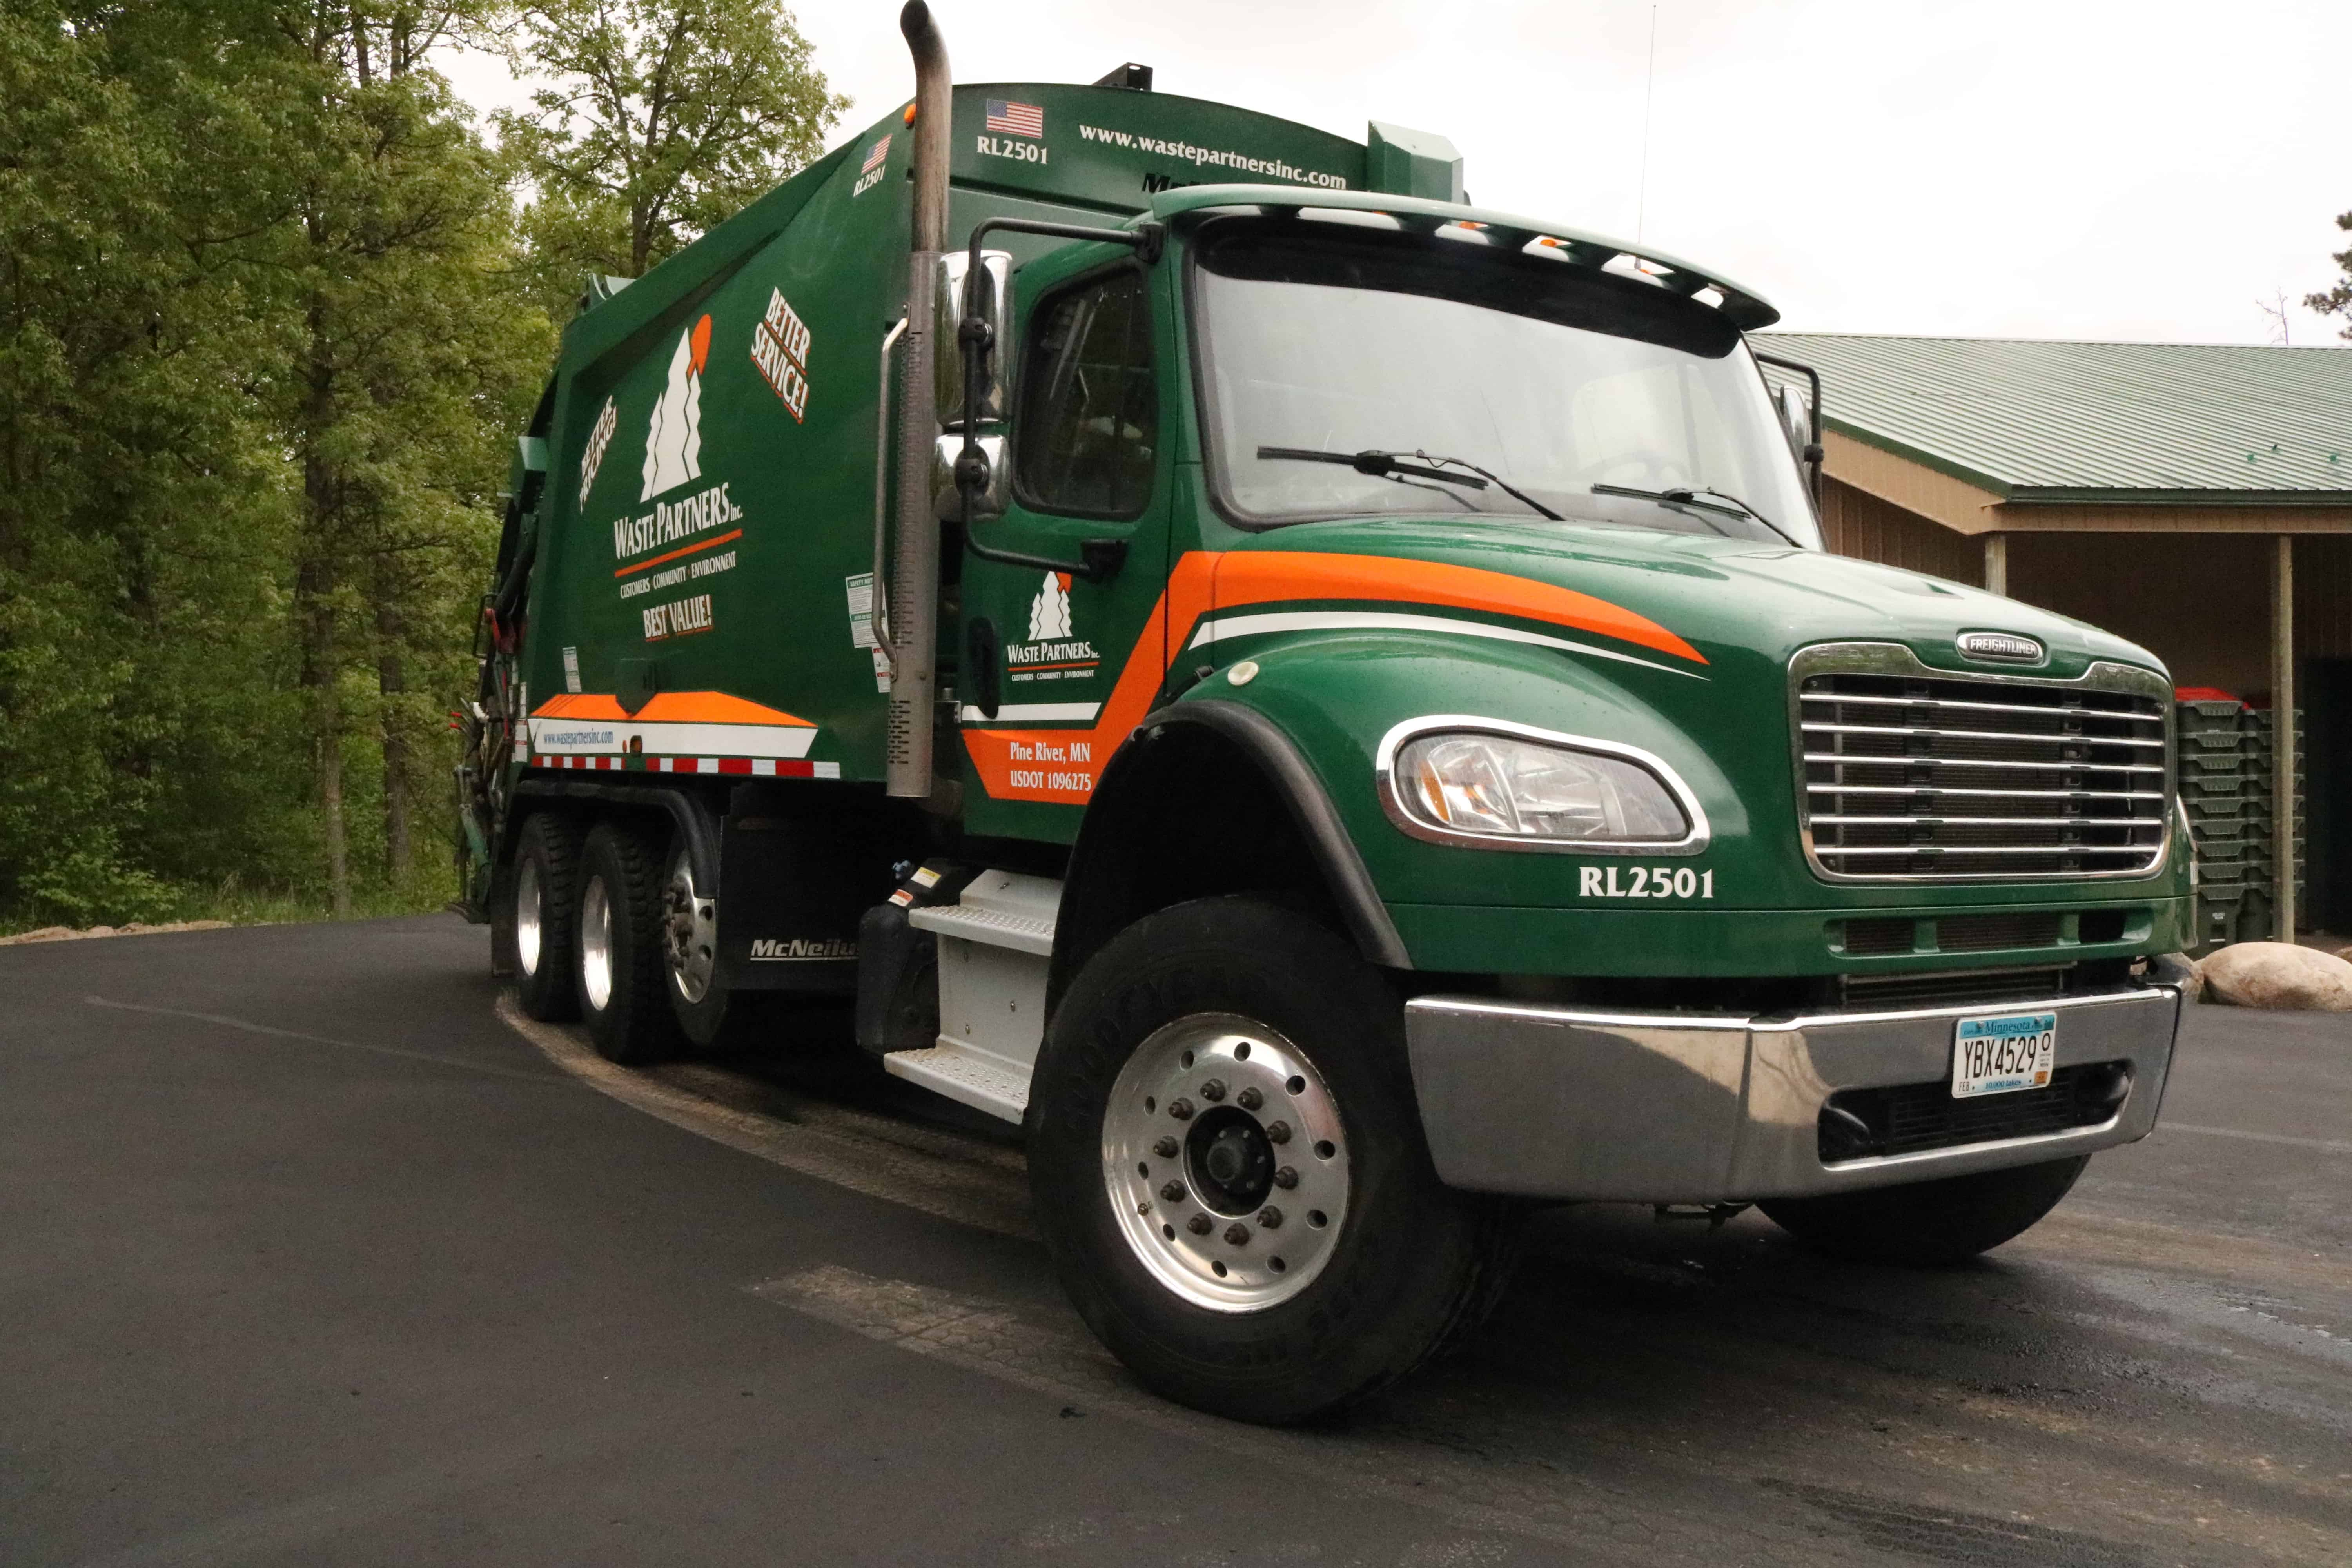 Waste Partners Garbage Truck on Property